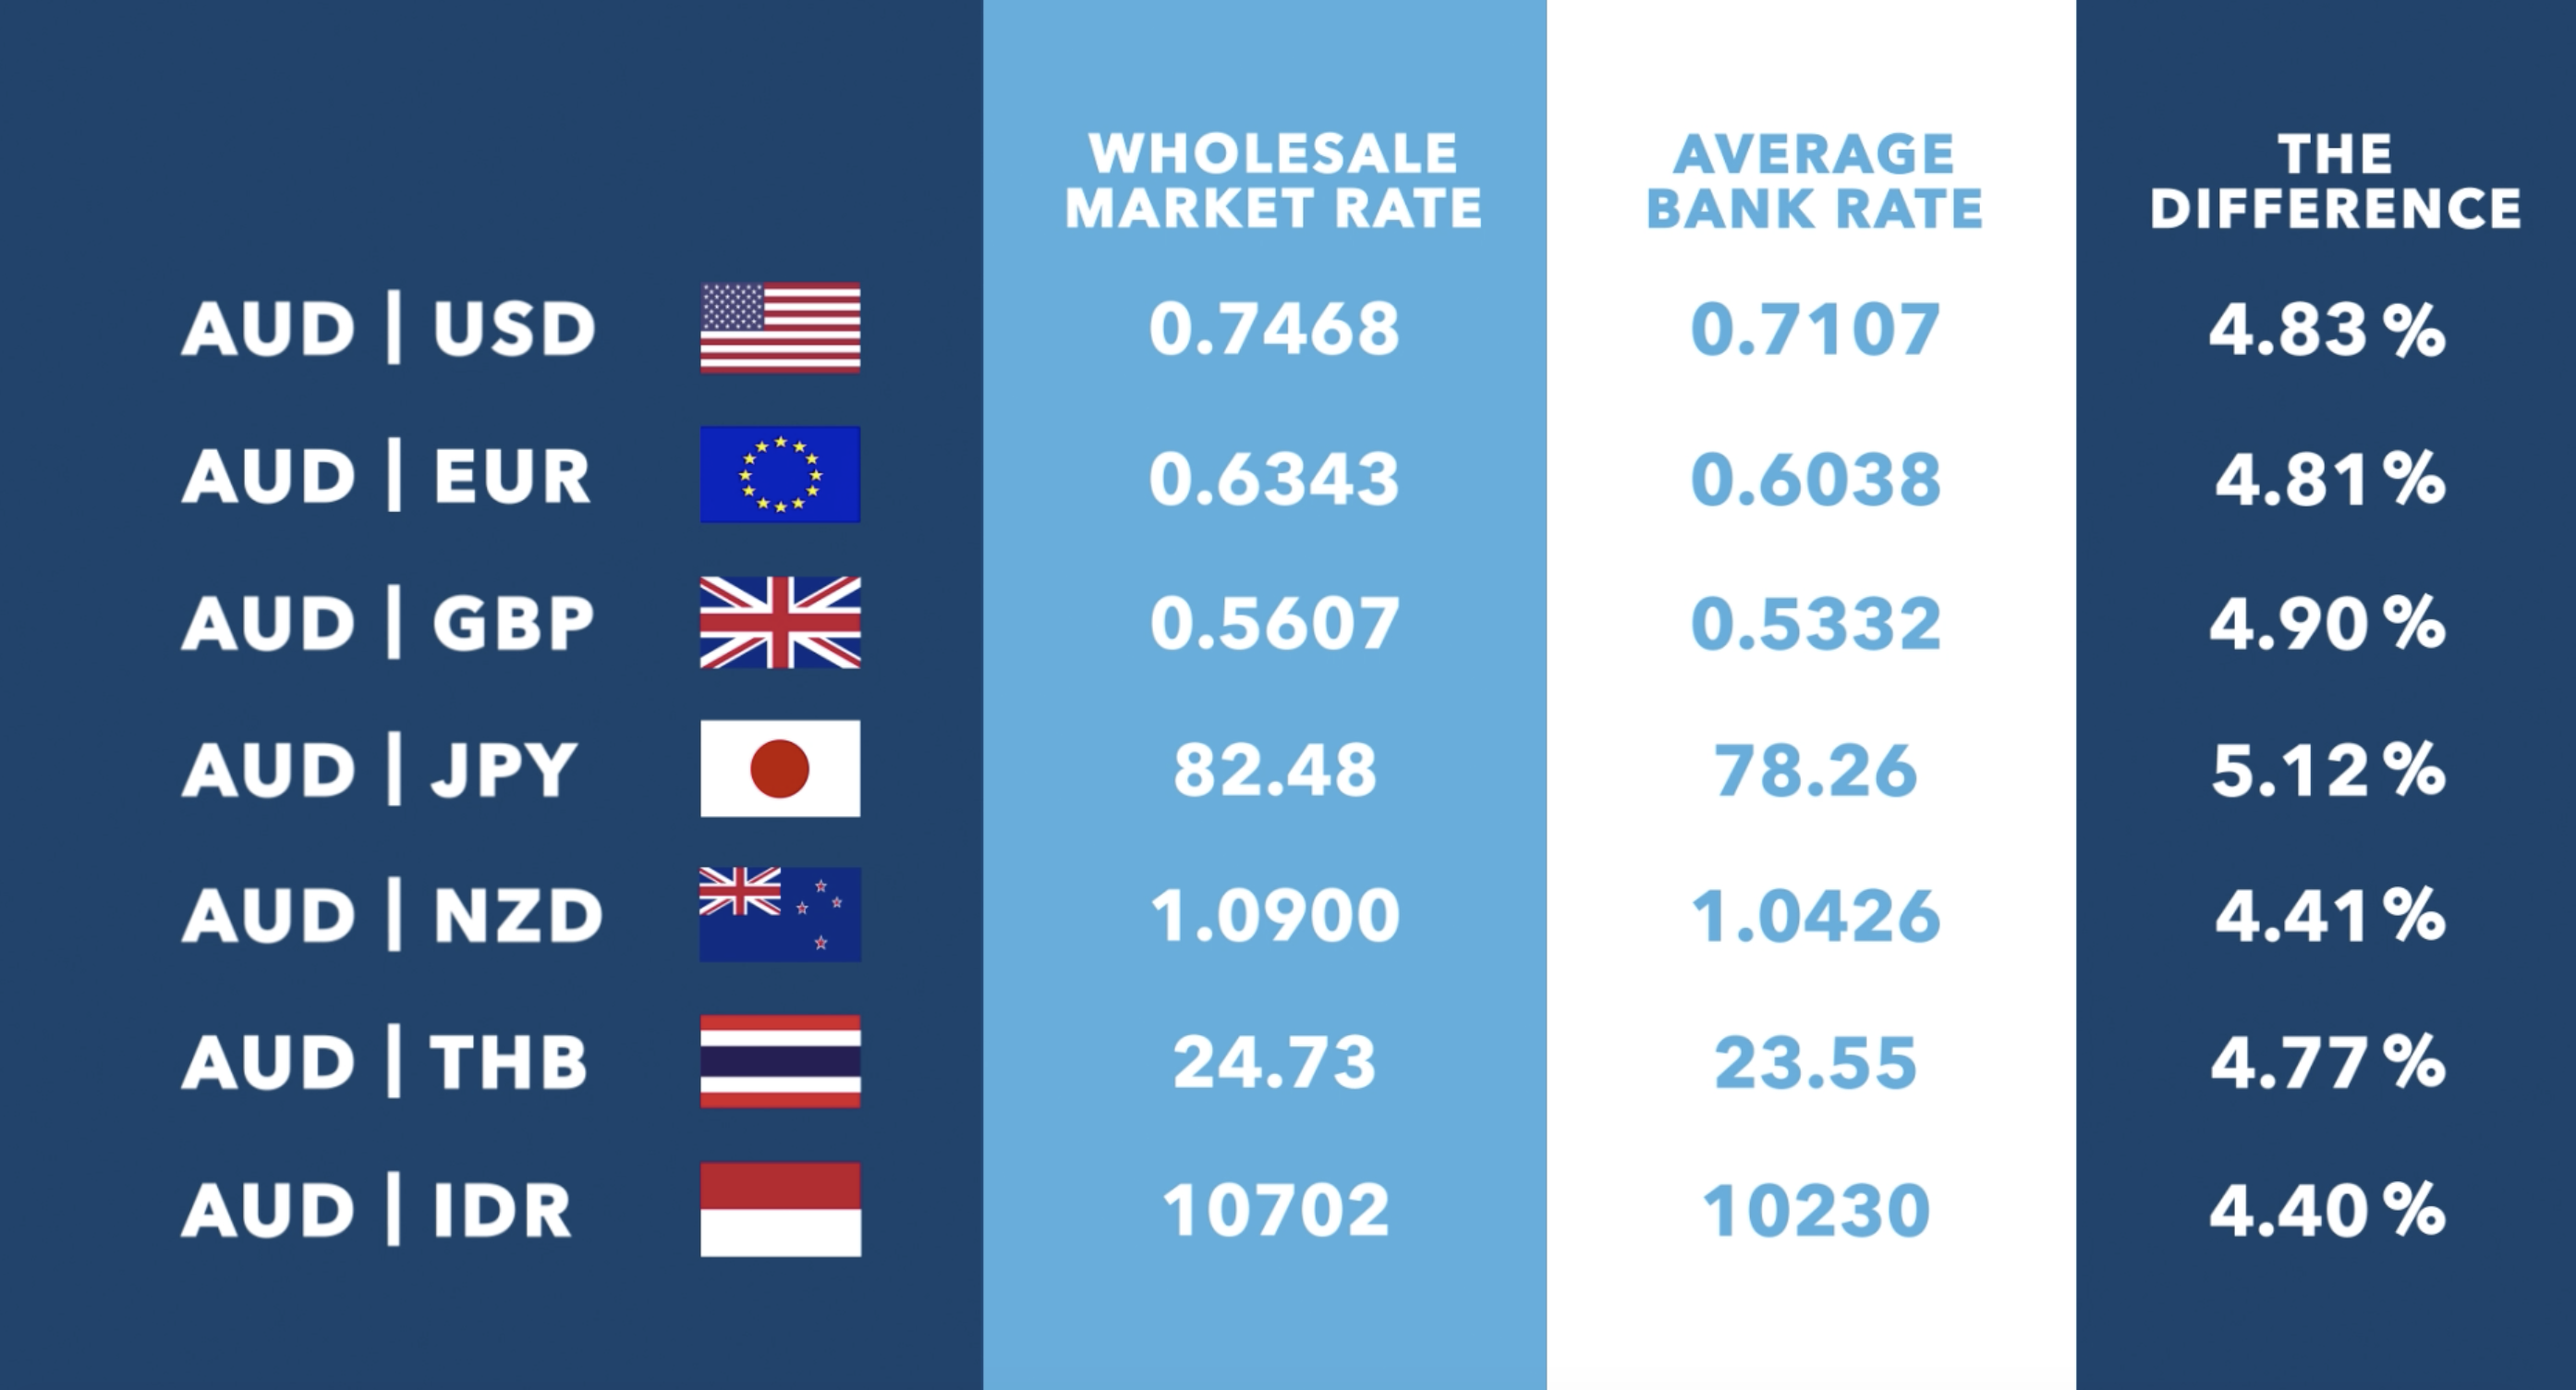 exchange rates between the Australian dollar and other major currencies